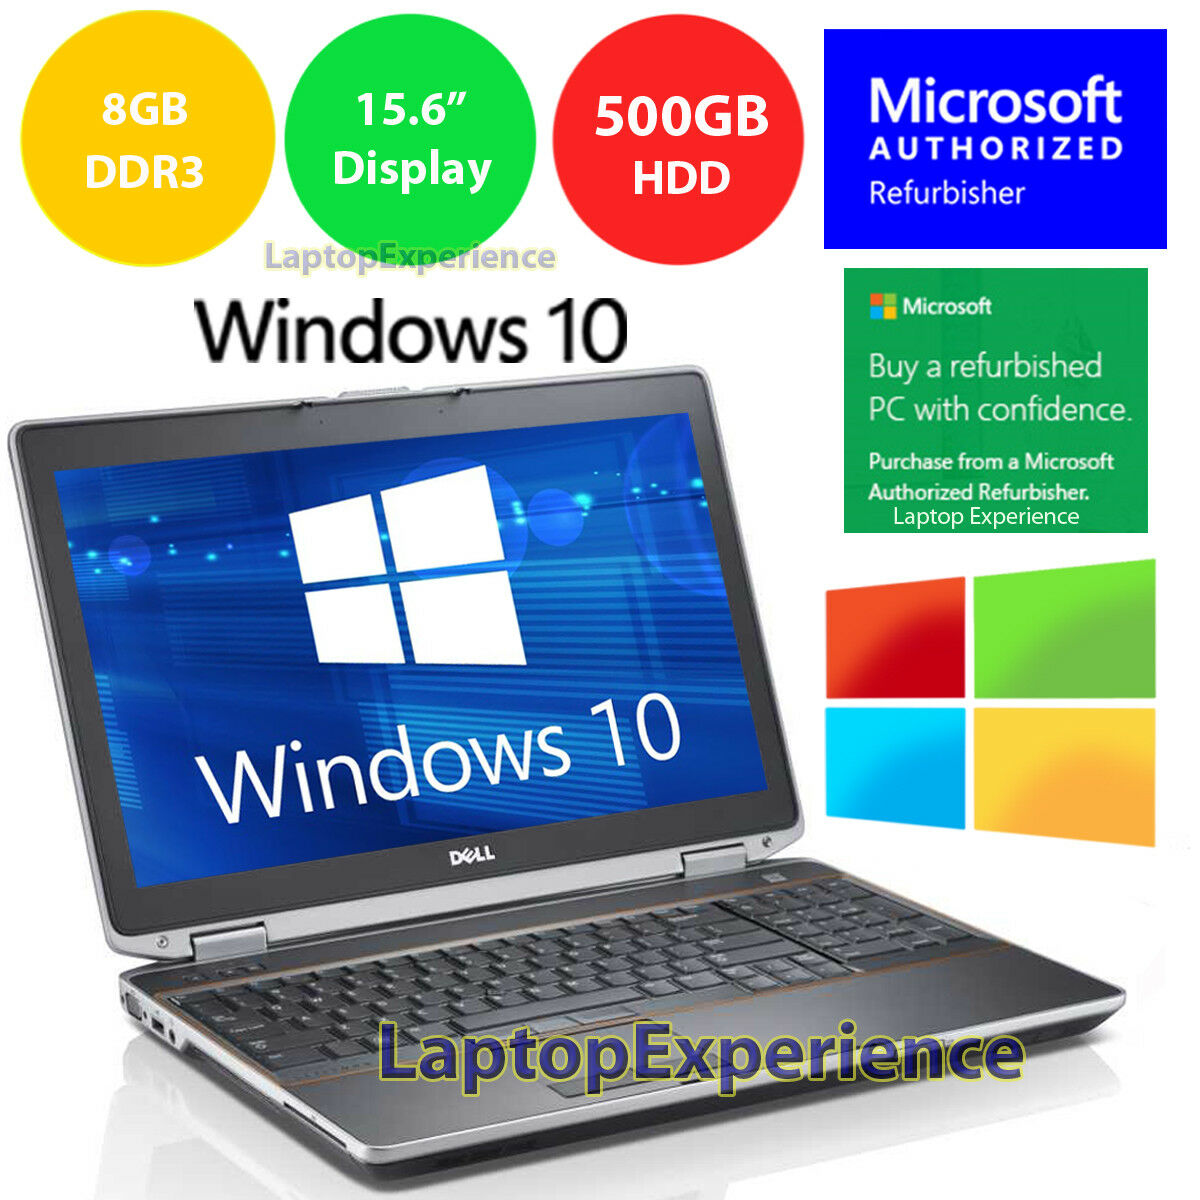 Laptop Windows - DELL LATiTUDE E5520 LAPTOP WINDOWS 10 WIN DVD INTEL i5 2.5GHz 8GB 500GB HD HDMI